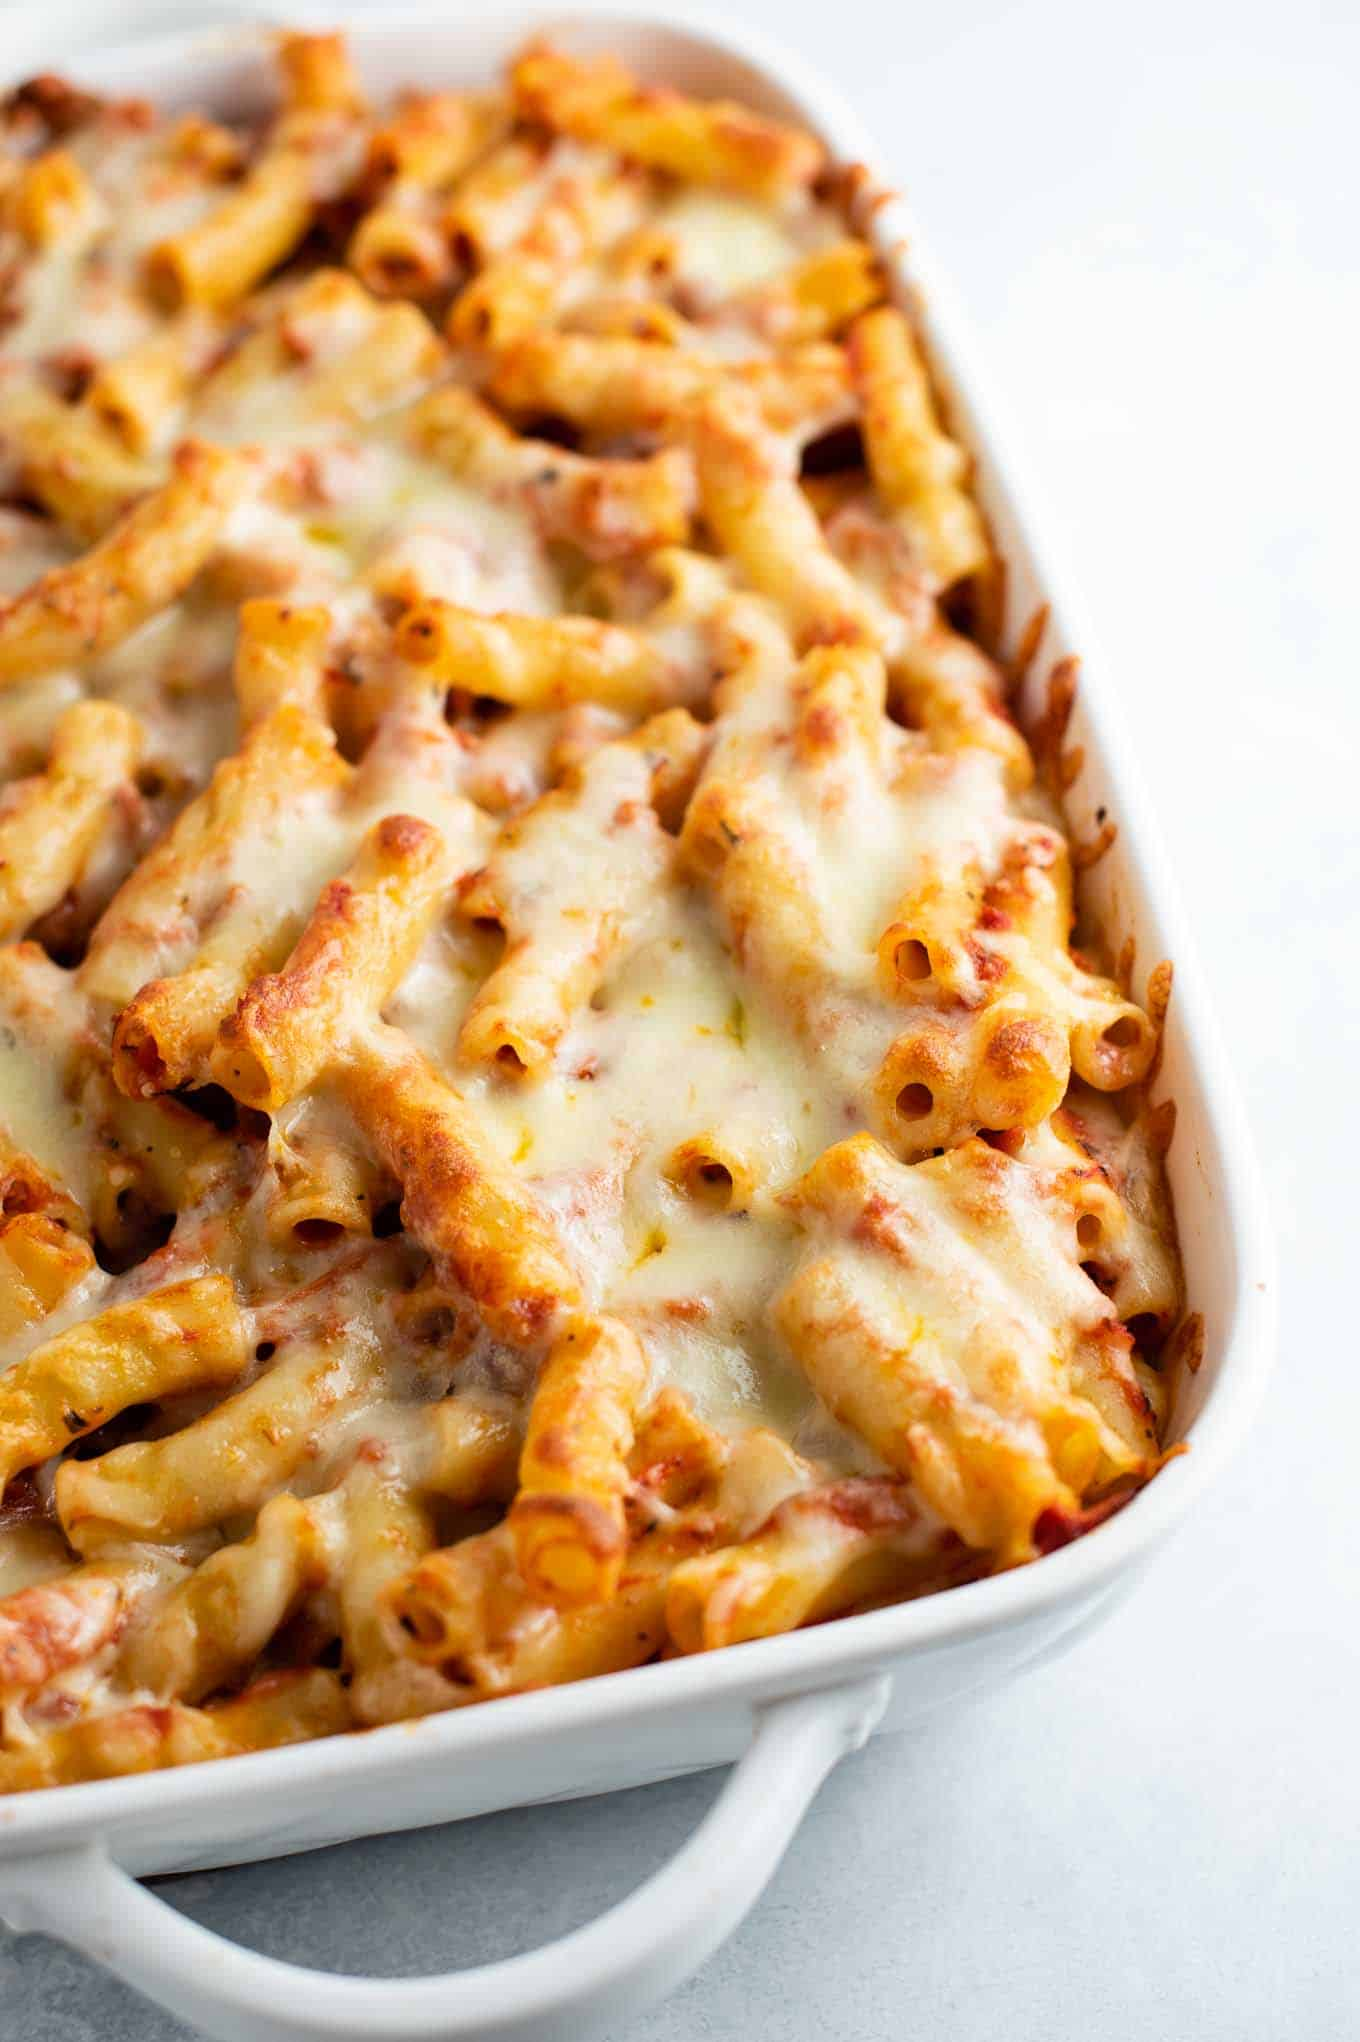 ziti in the pan before serving